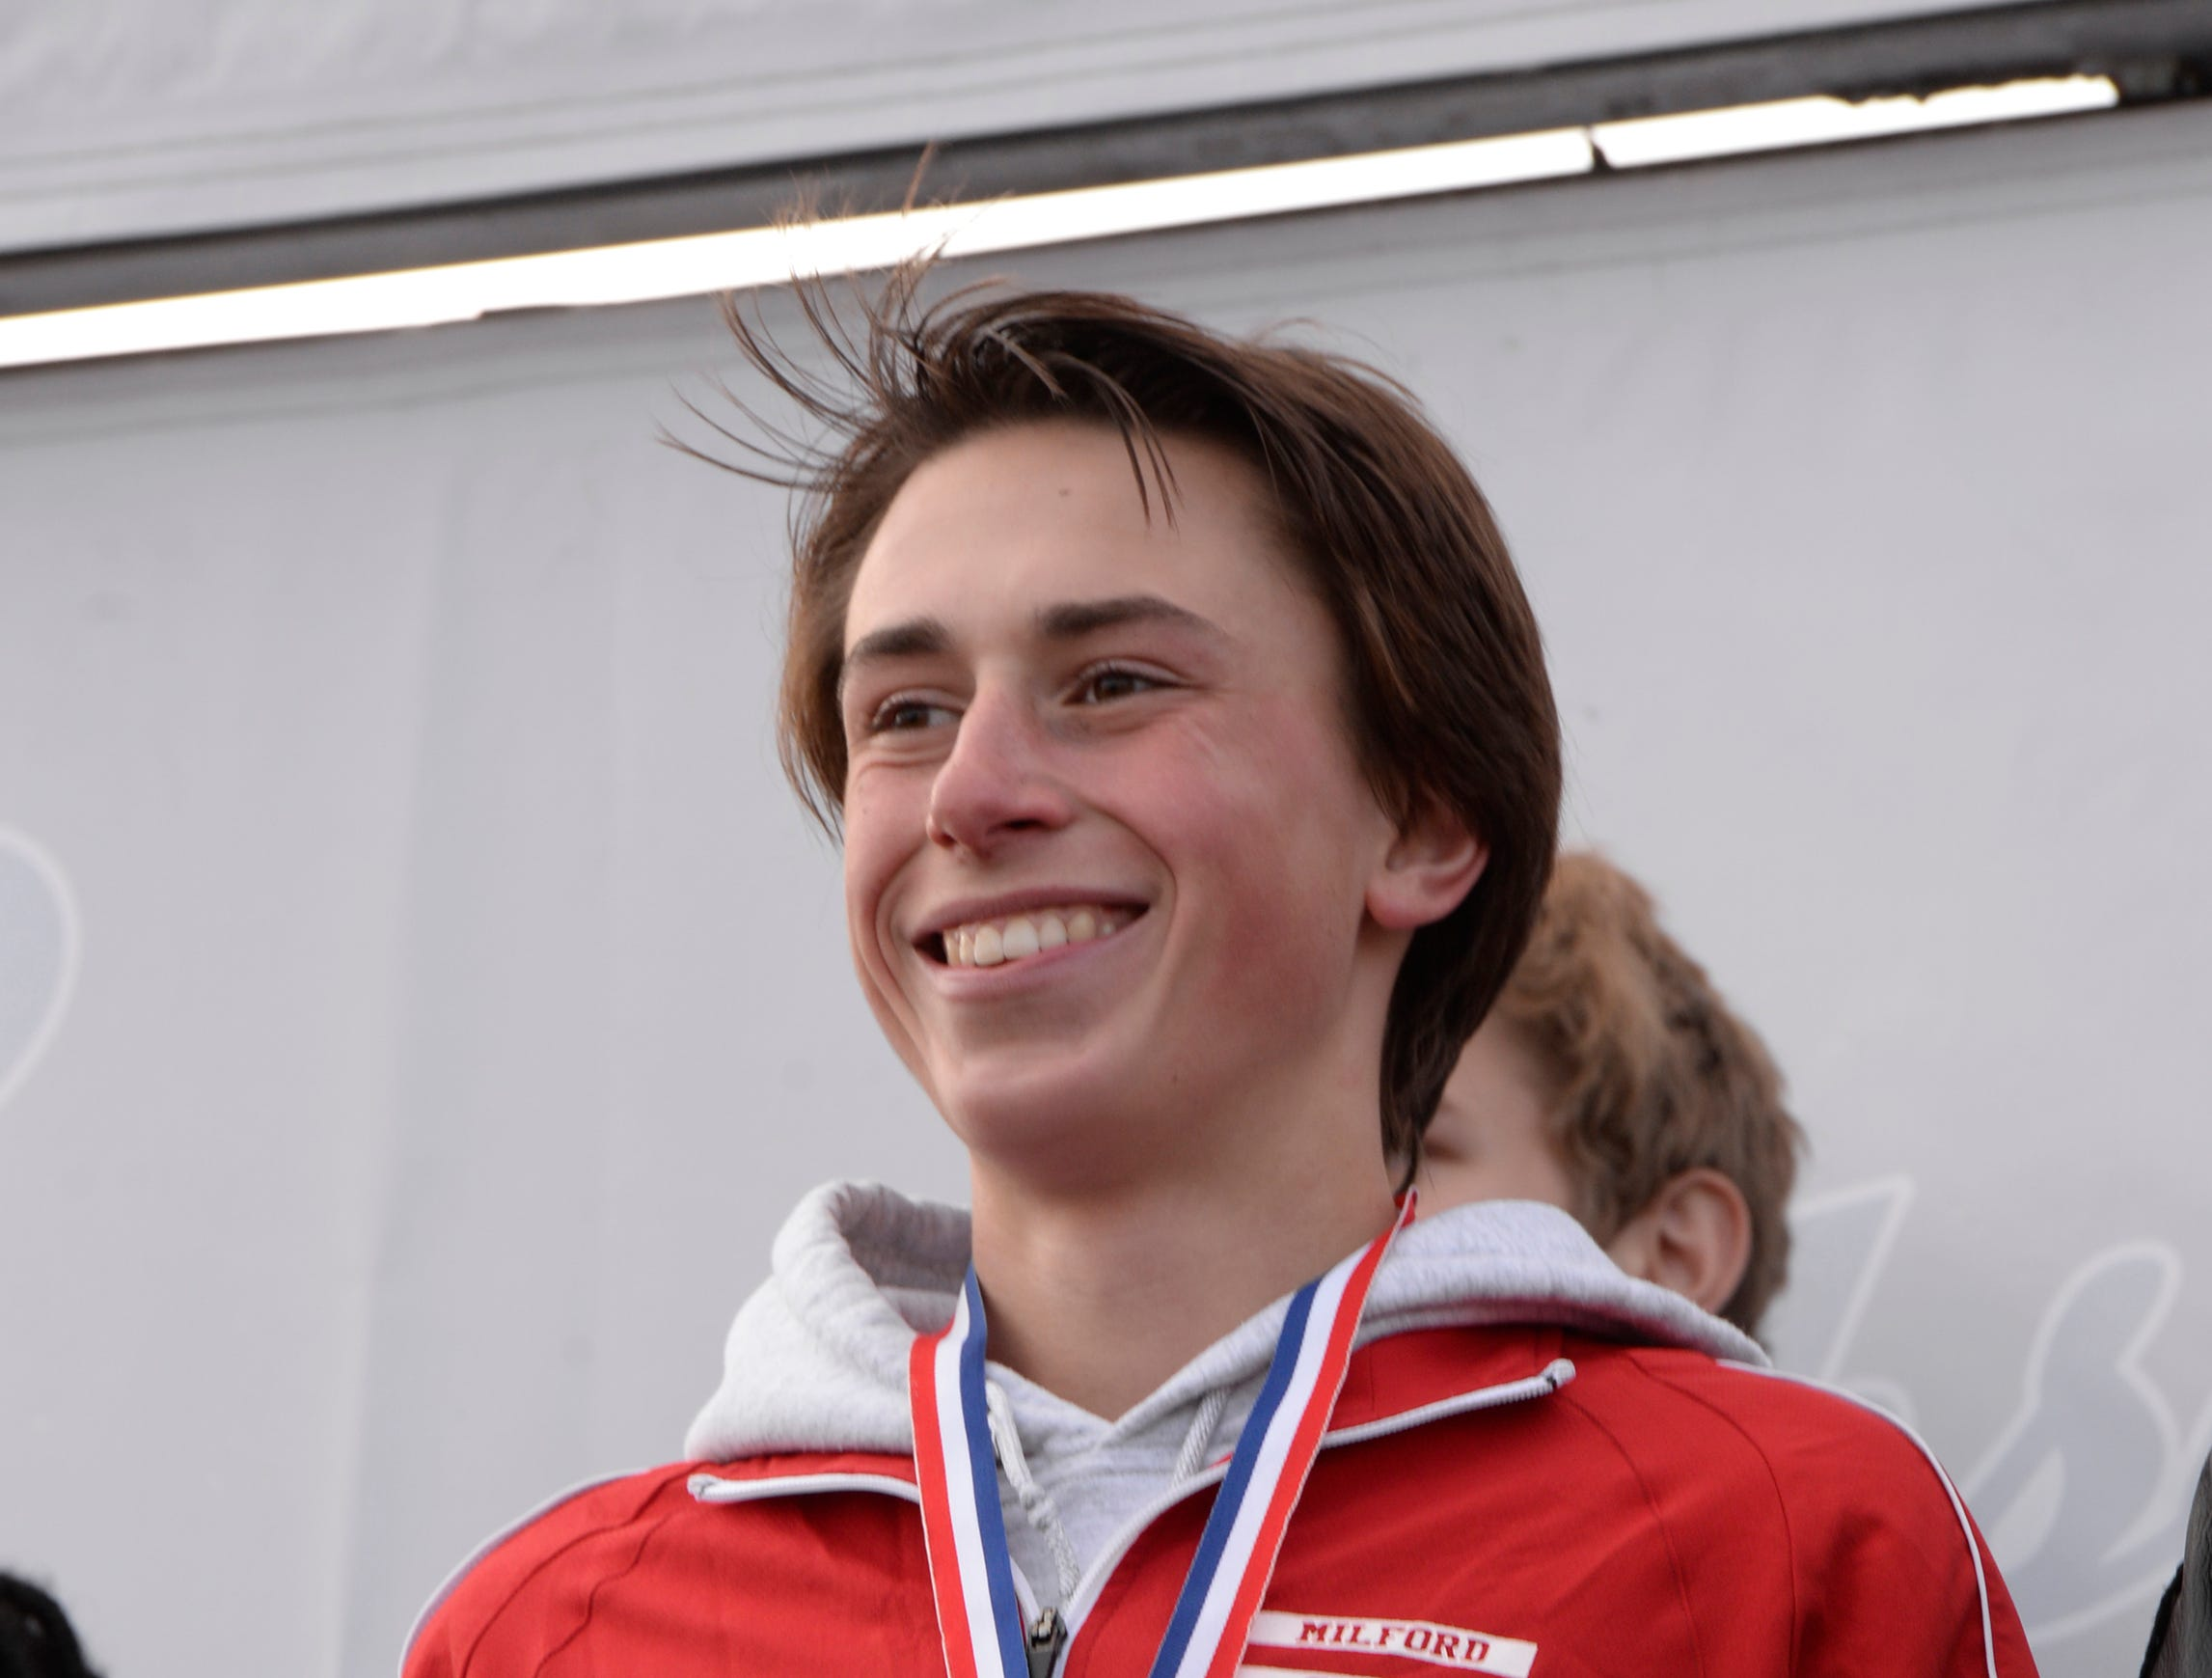 Milford's Evan White finished in sixth place with a time of 15:46.4 at the Division 1 2018 cross country finals at Michigan International Speedway.